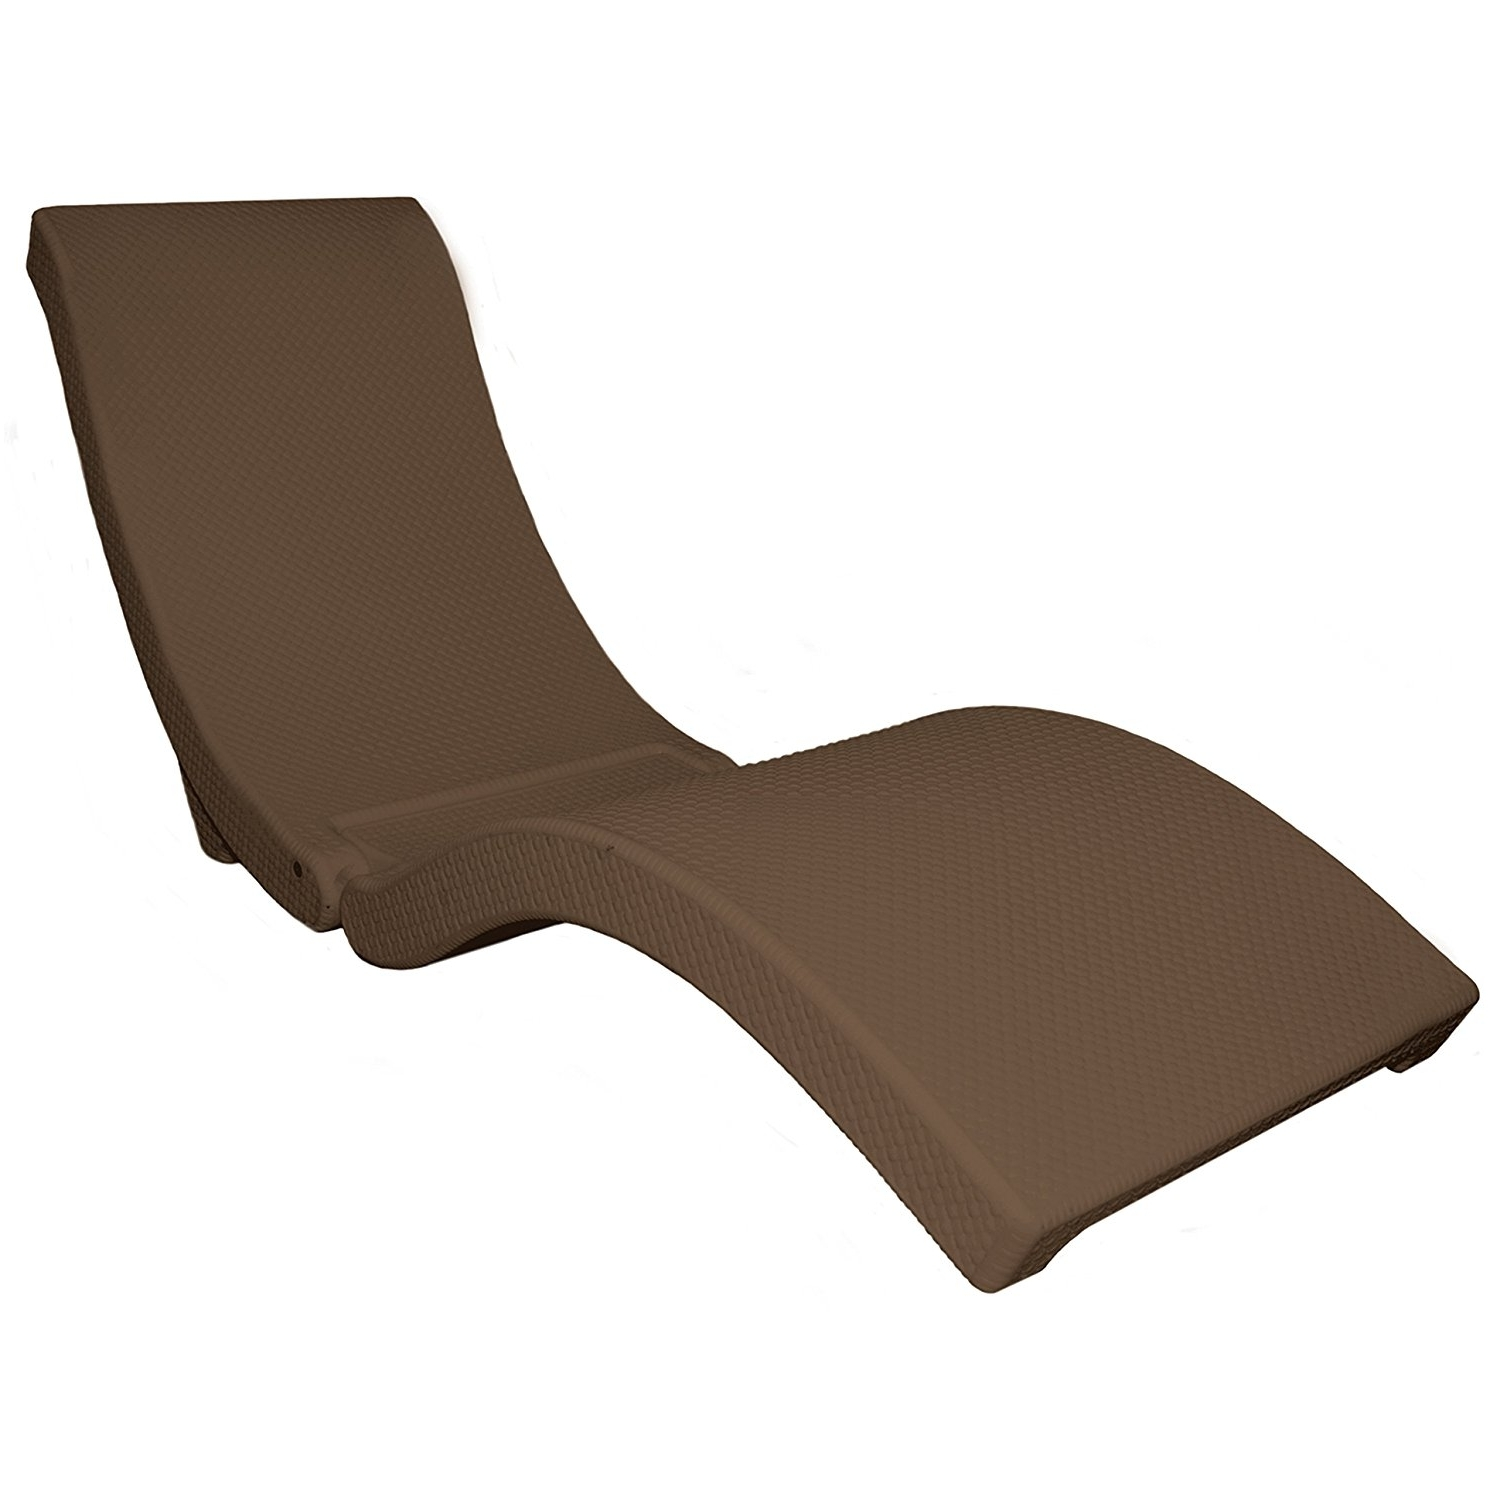 Floating Chaise Lounges Pertaining To Popular Amazon: Swimways Terra Sol Sonoma Chaise Pool Lounge: Garden (View 7 of 15)